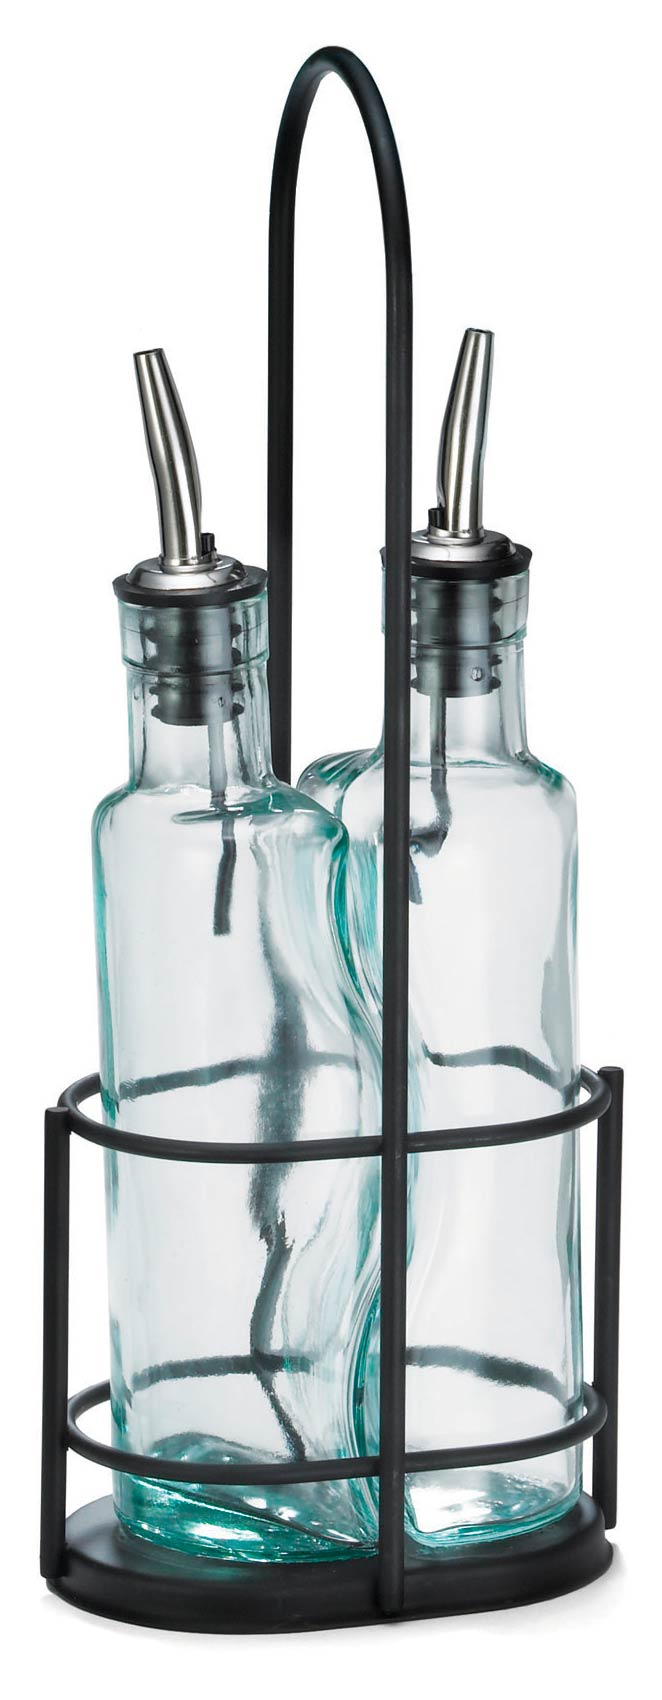 Gemelli™ Olive Oil Bottle & Black Rack Set, Pourer